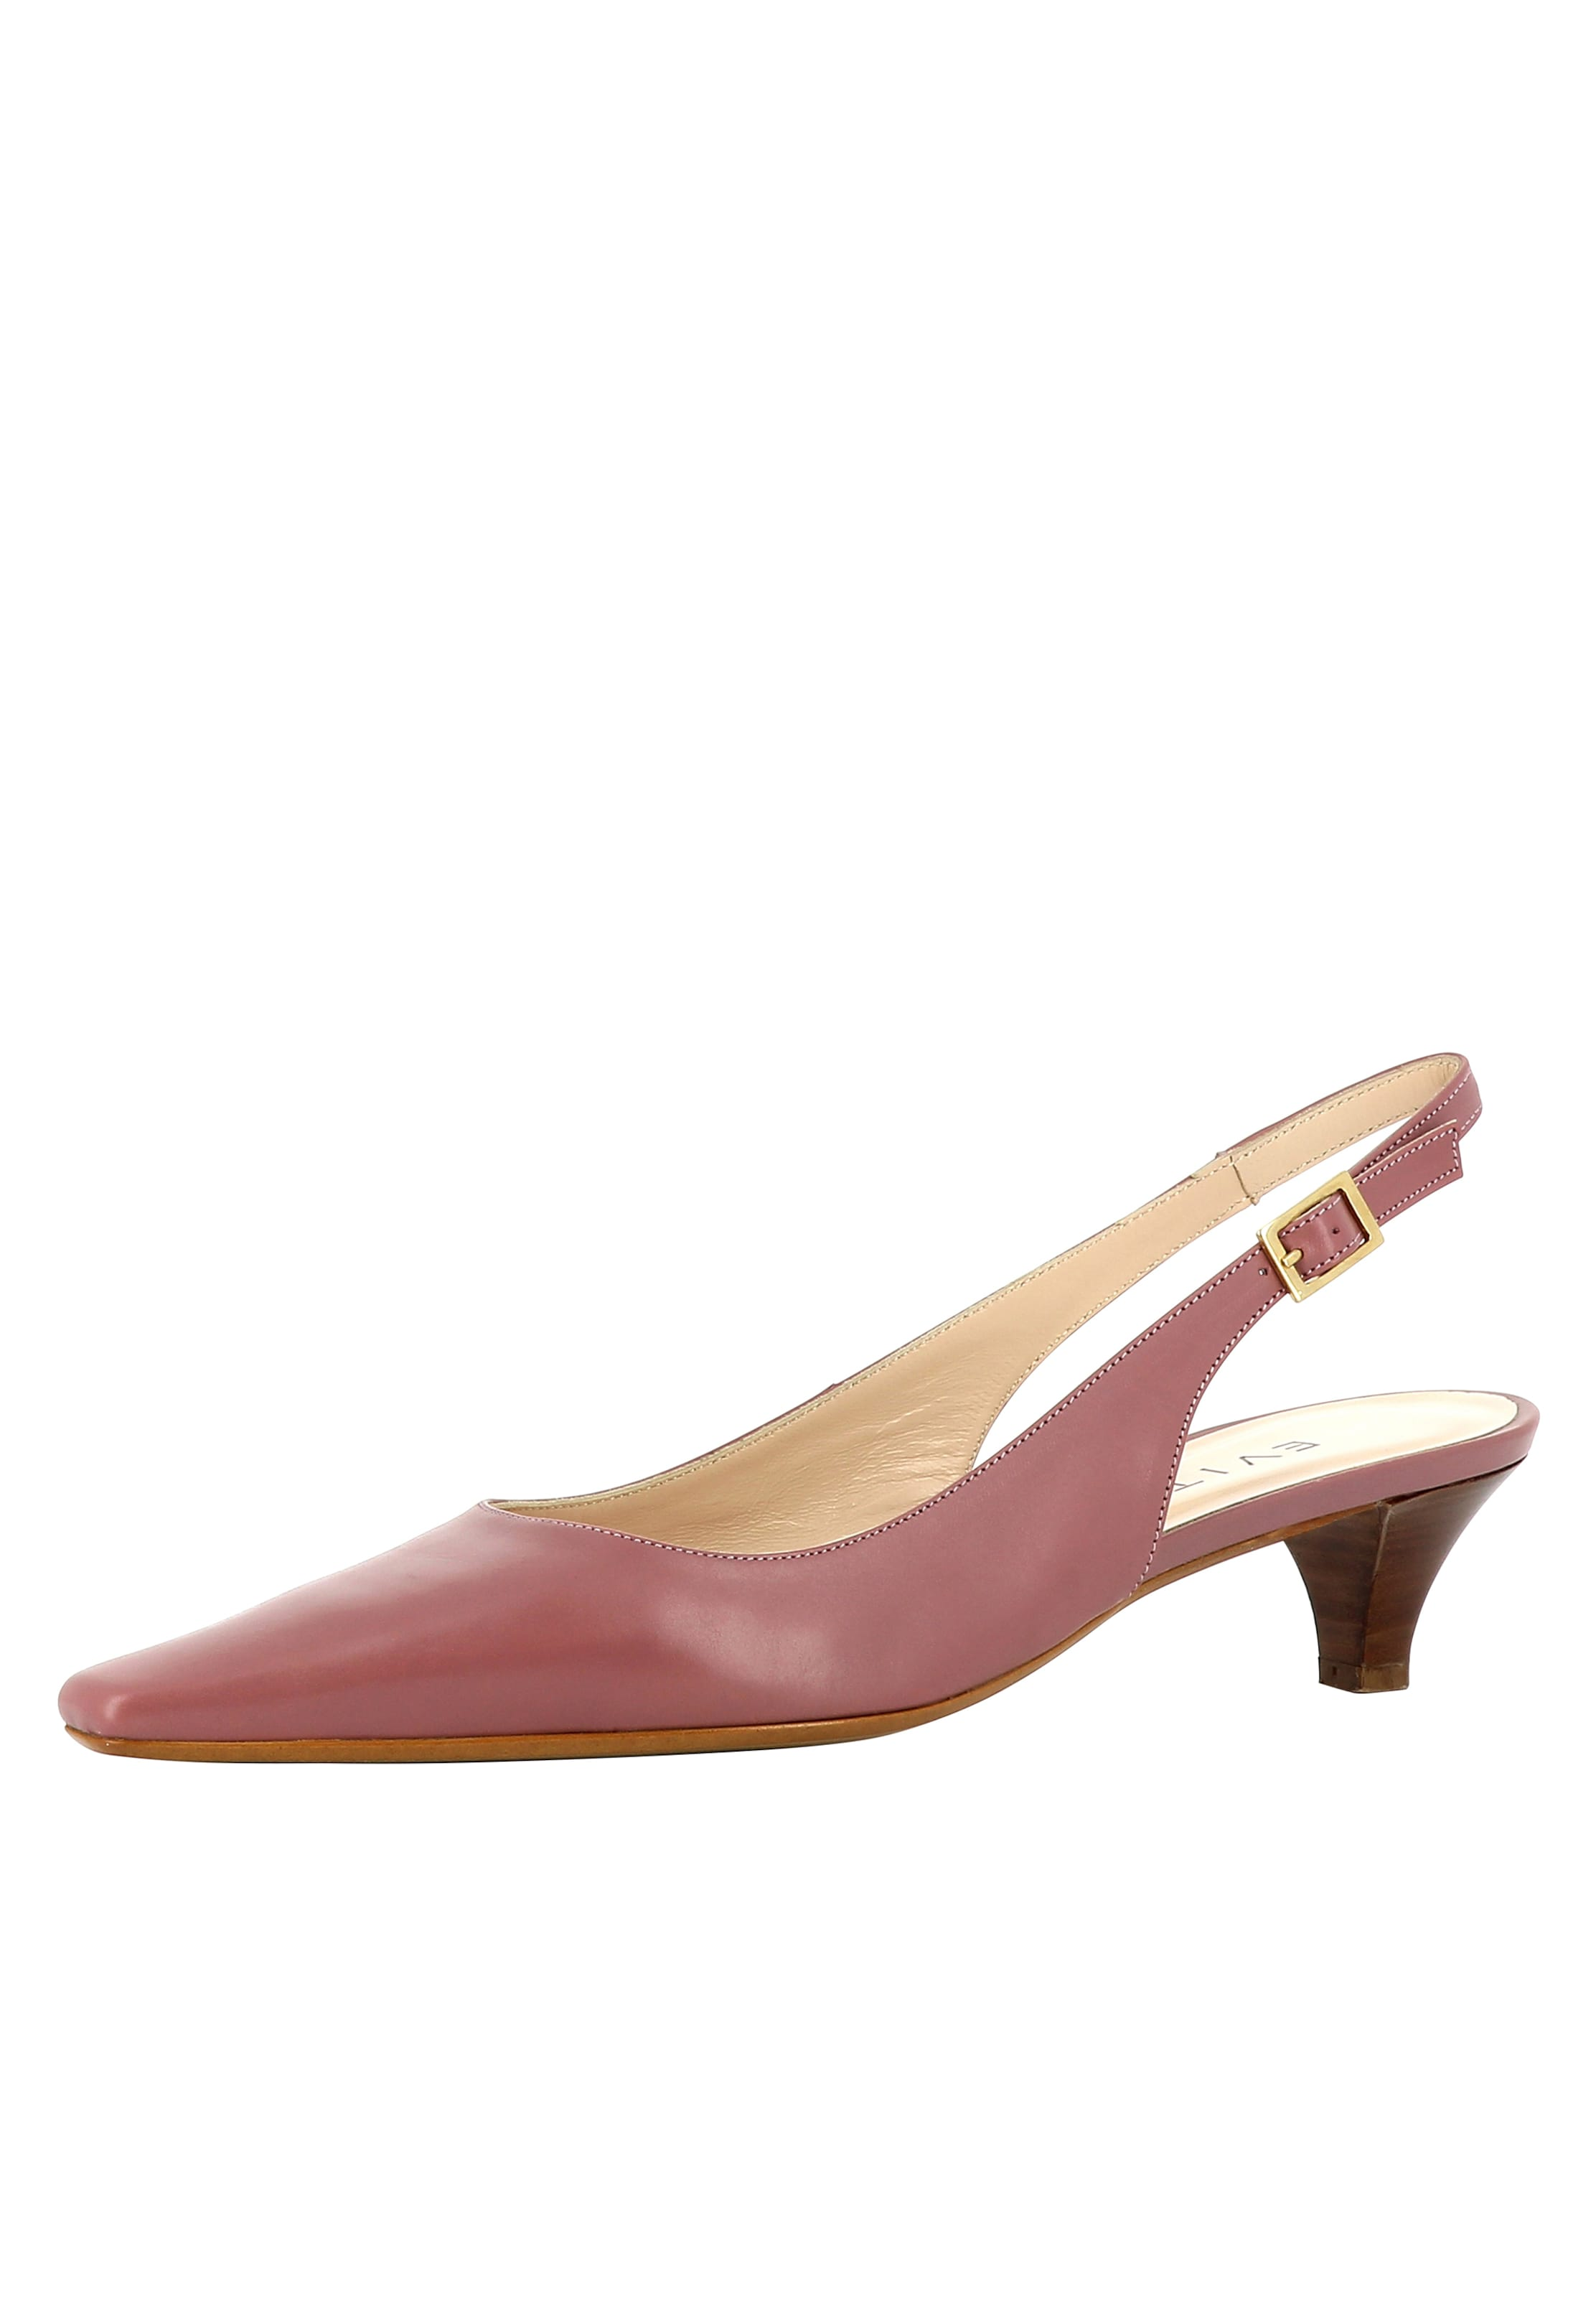 Altrosa Sling In Damen Pumps Evita 76IfgmYvby